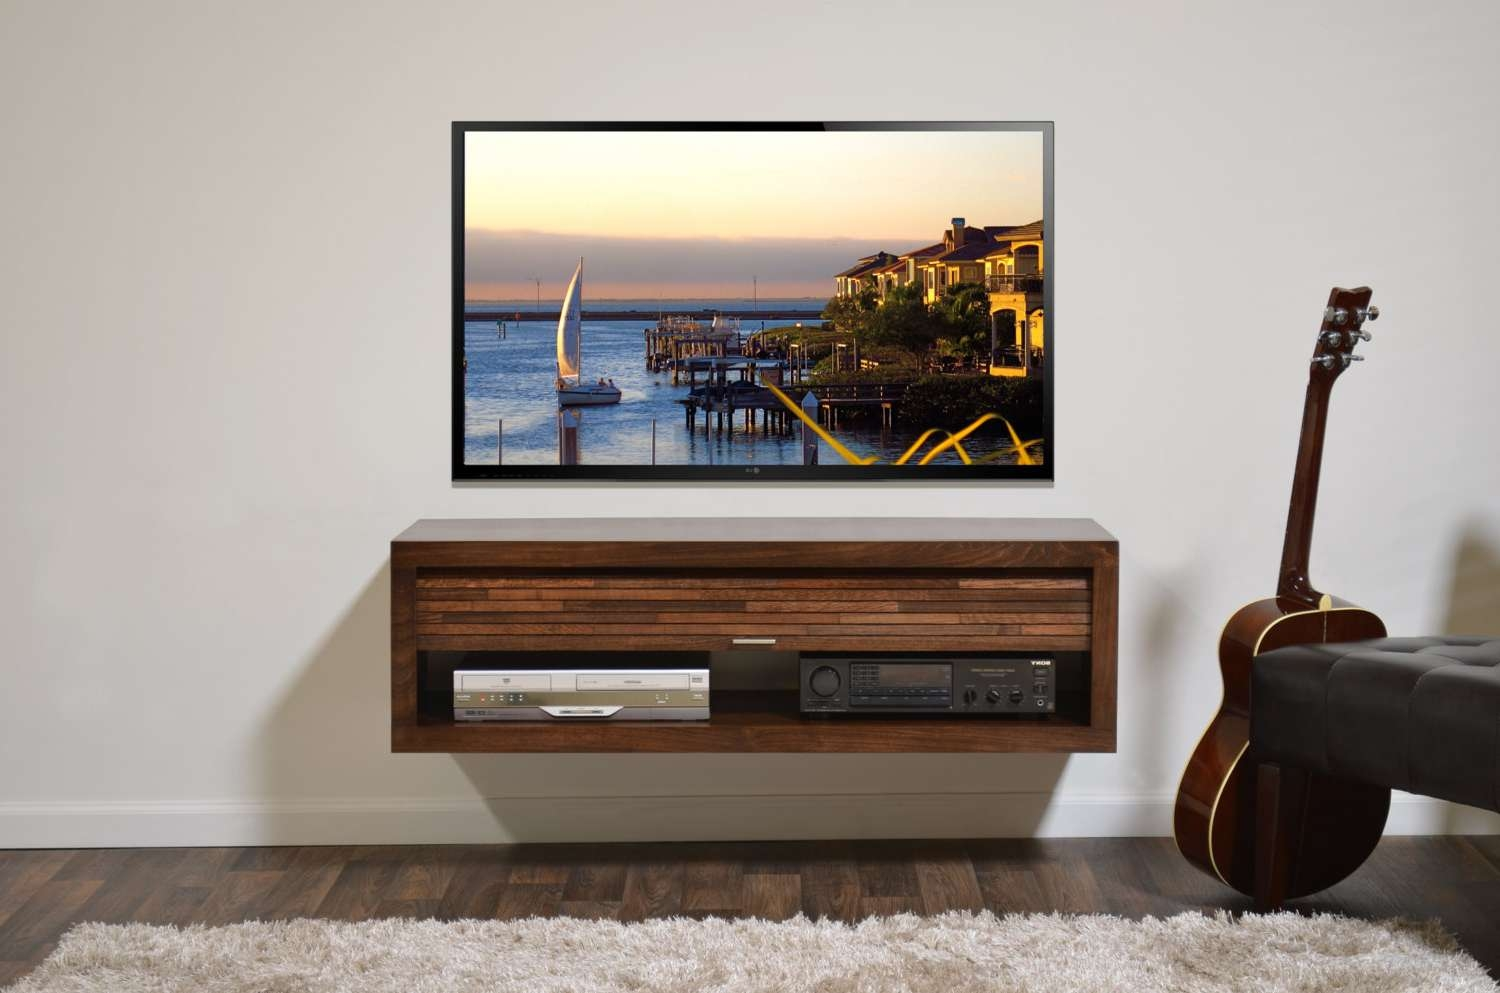 Impeccable Lack Tv Hack Lack Tv Hack Ikea Hackers Ikea Hackers To Inside Floating Tv Cabinets (View 3 of 20)